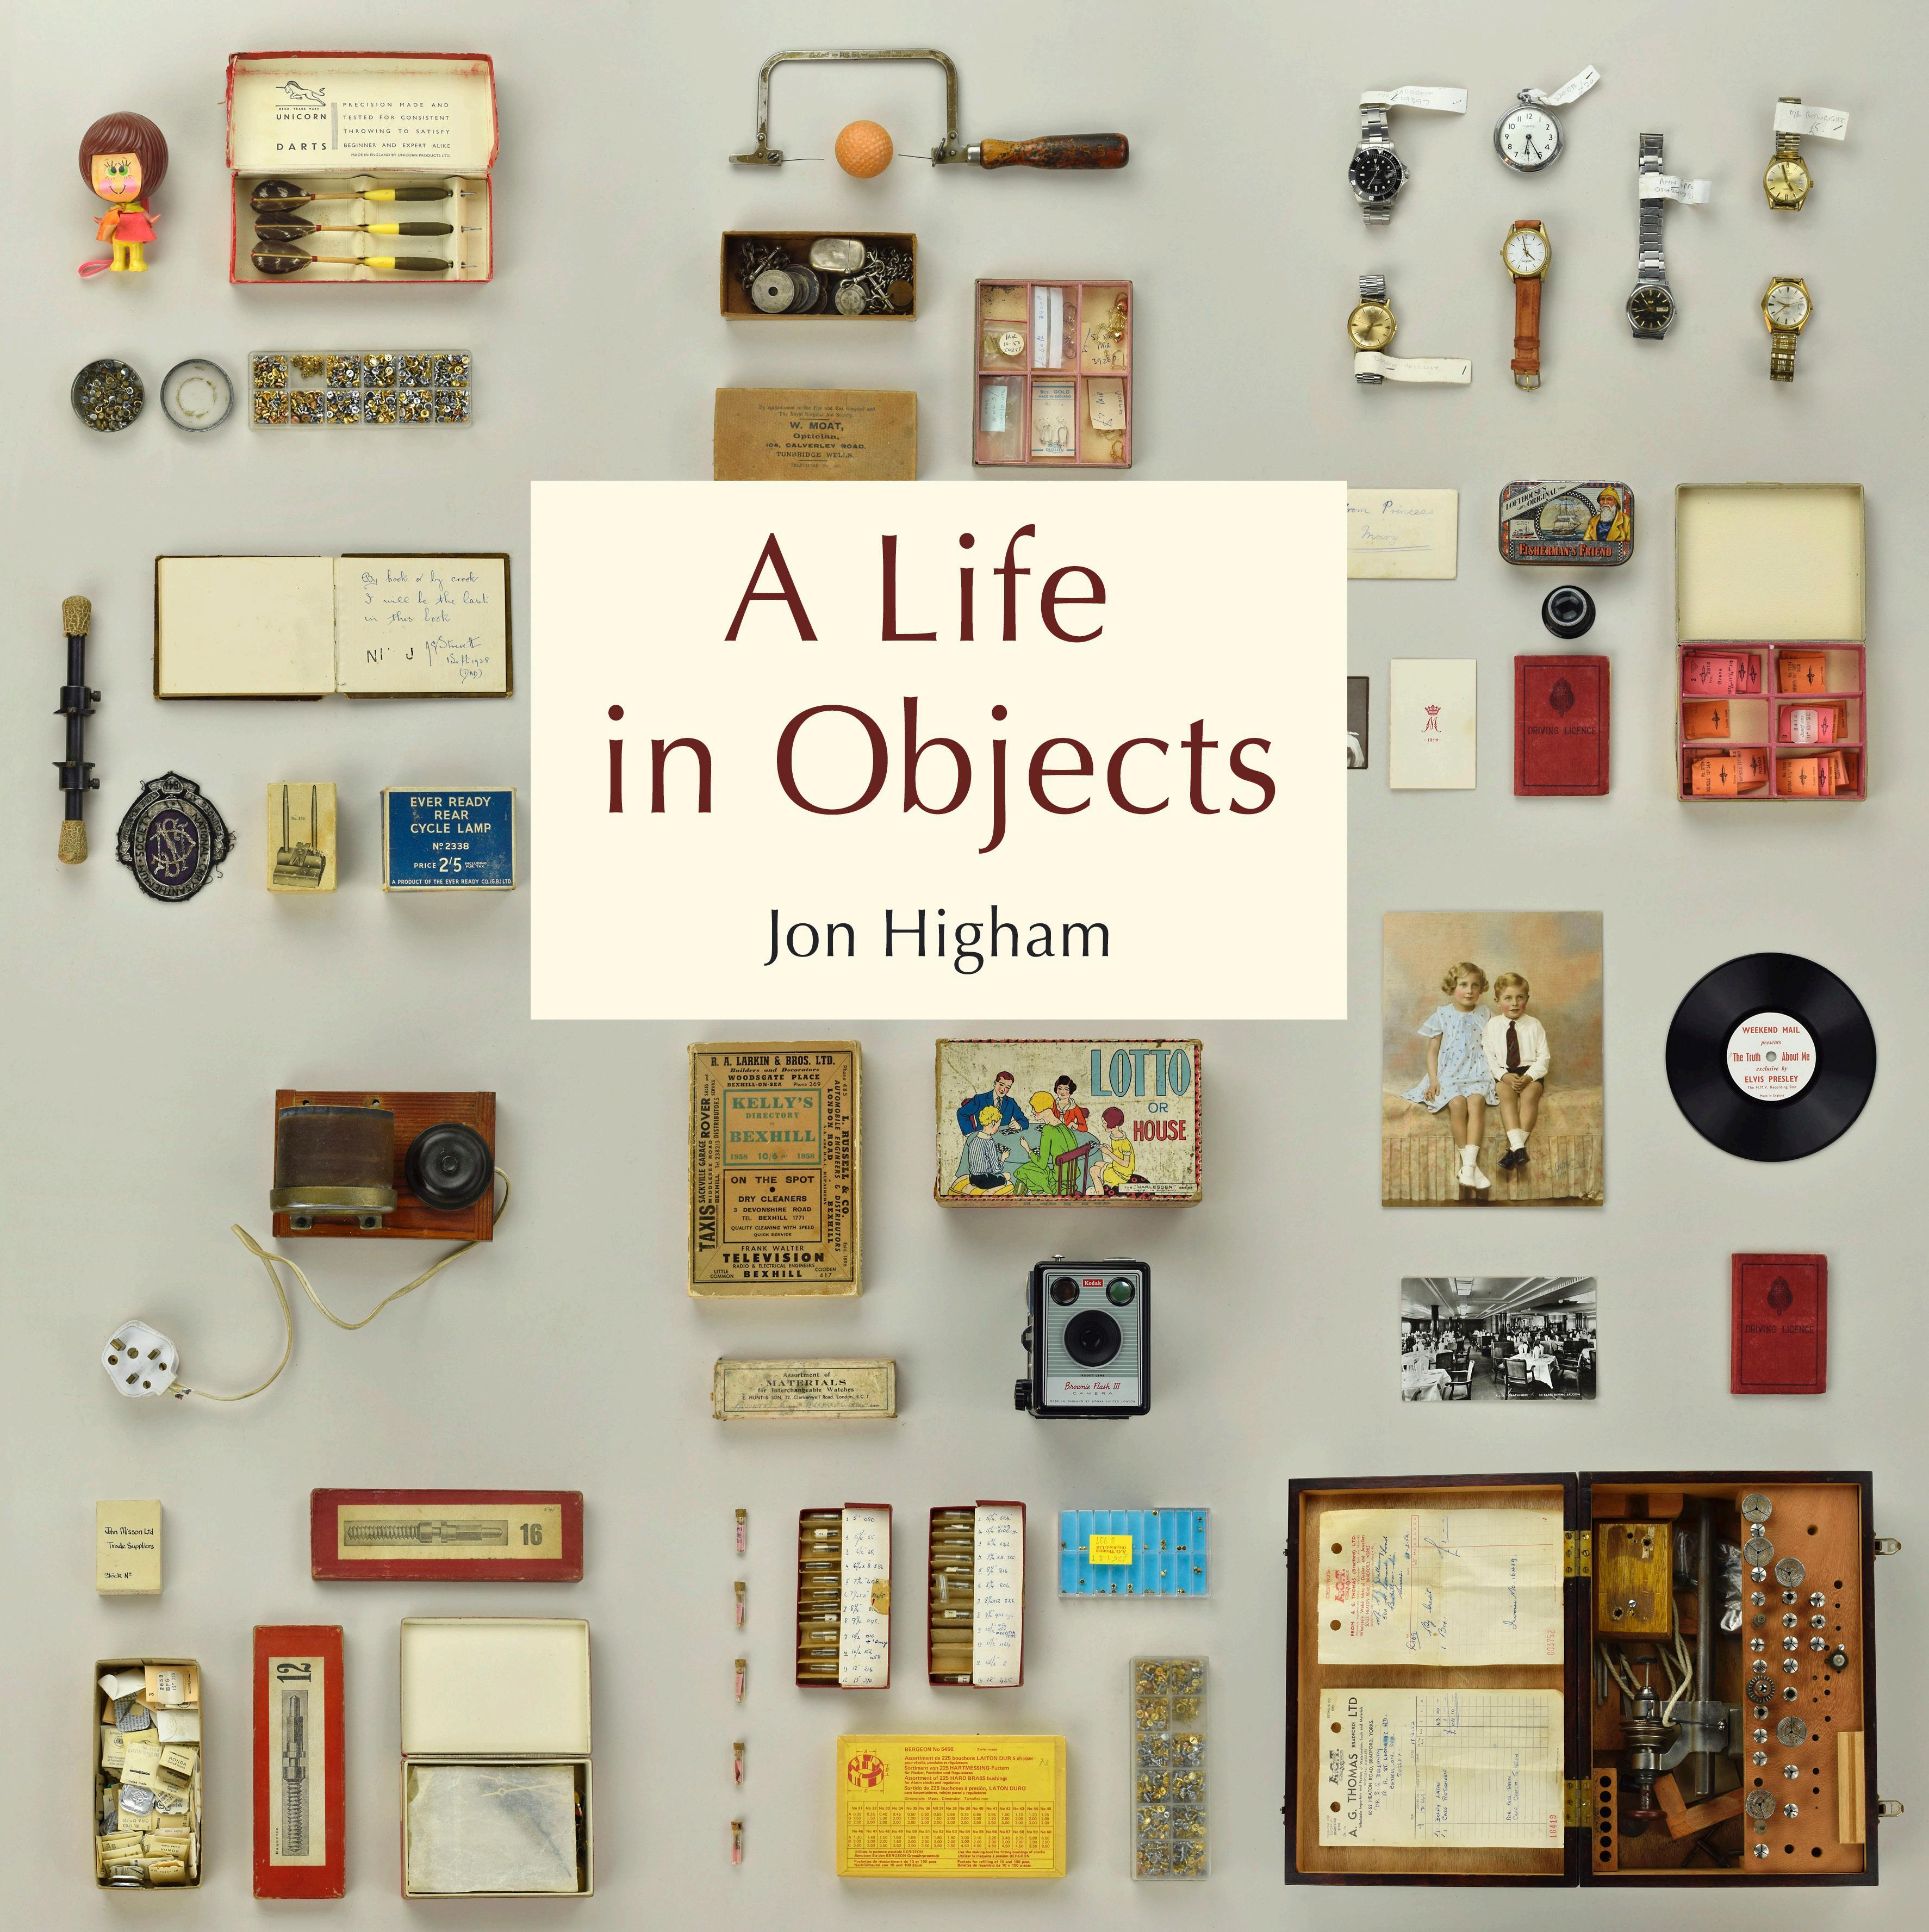 story from: A Life in Objects